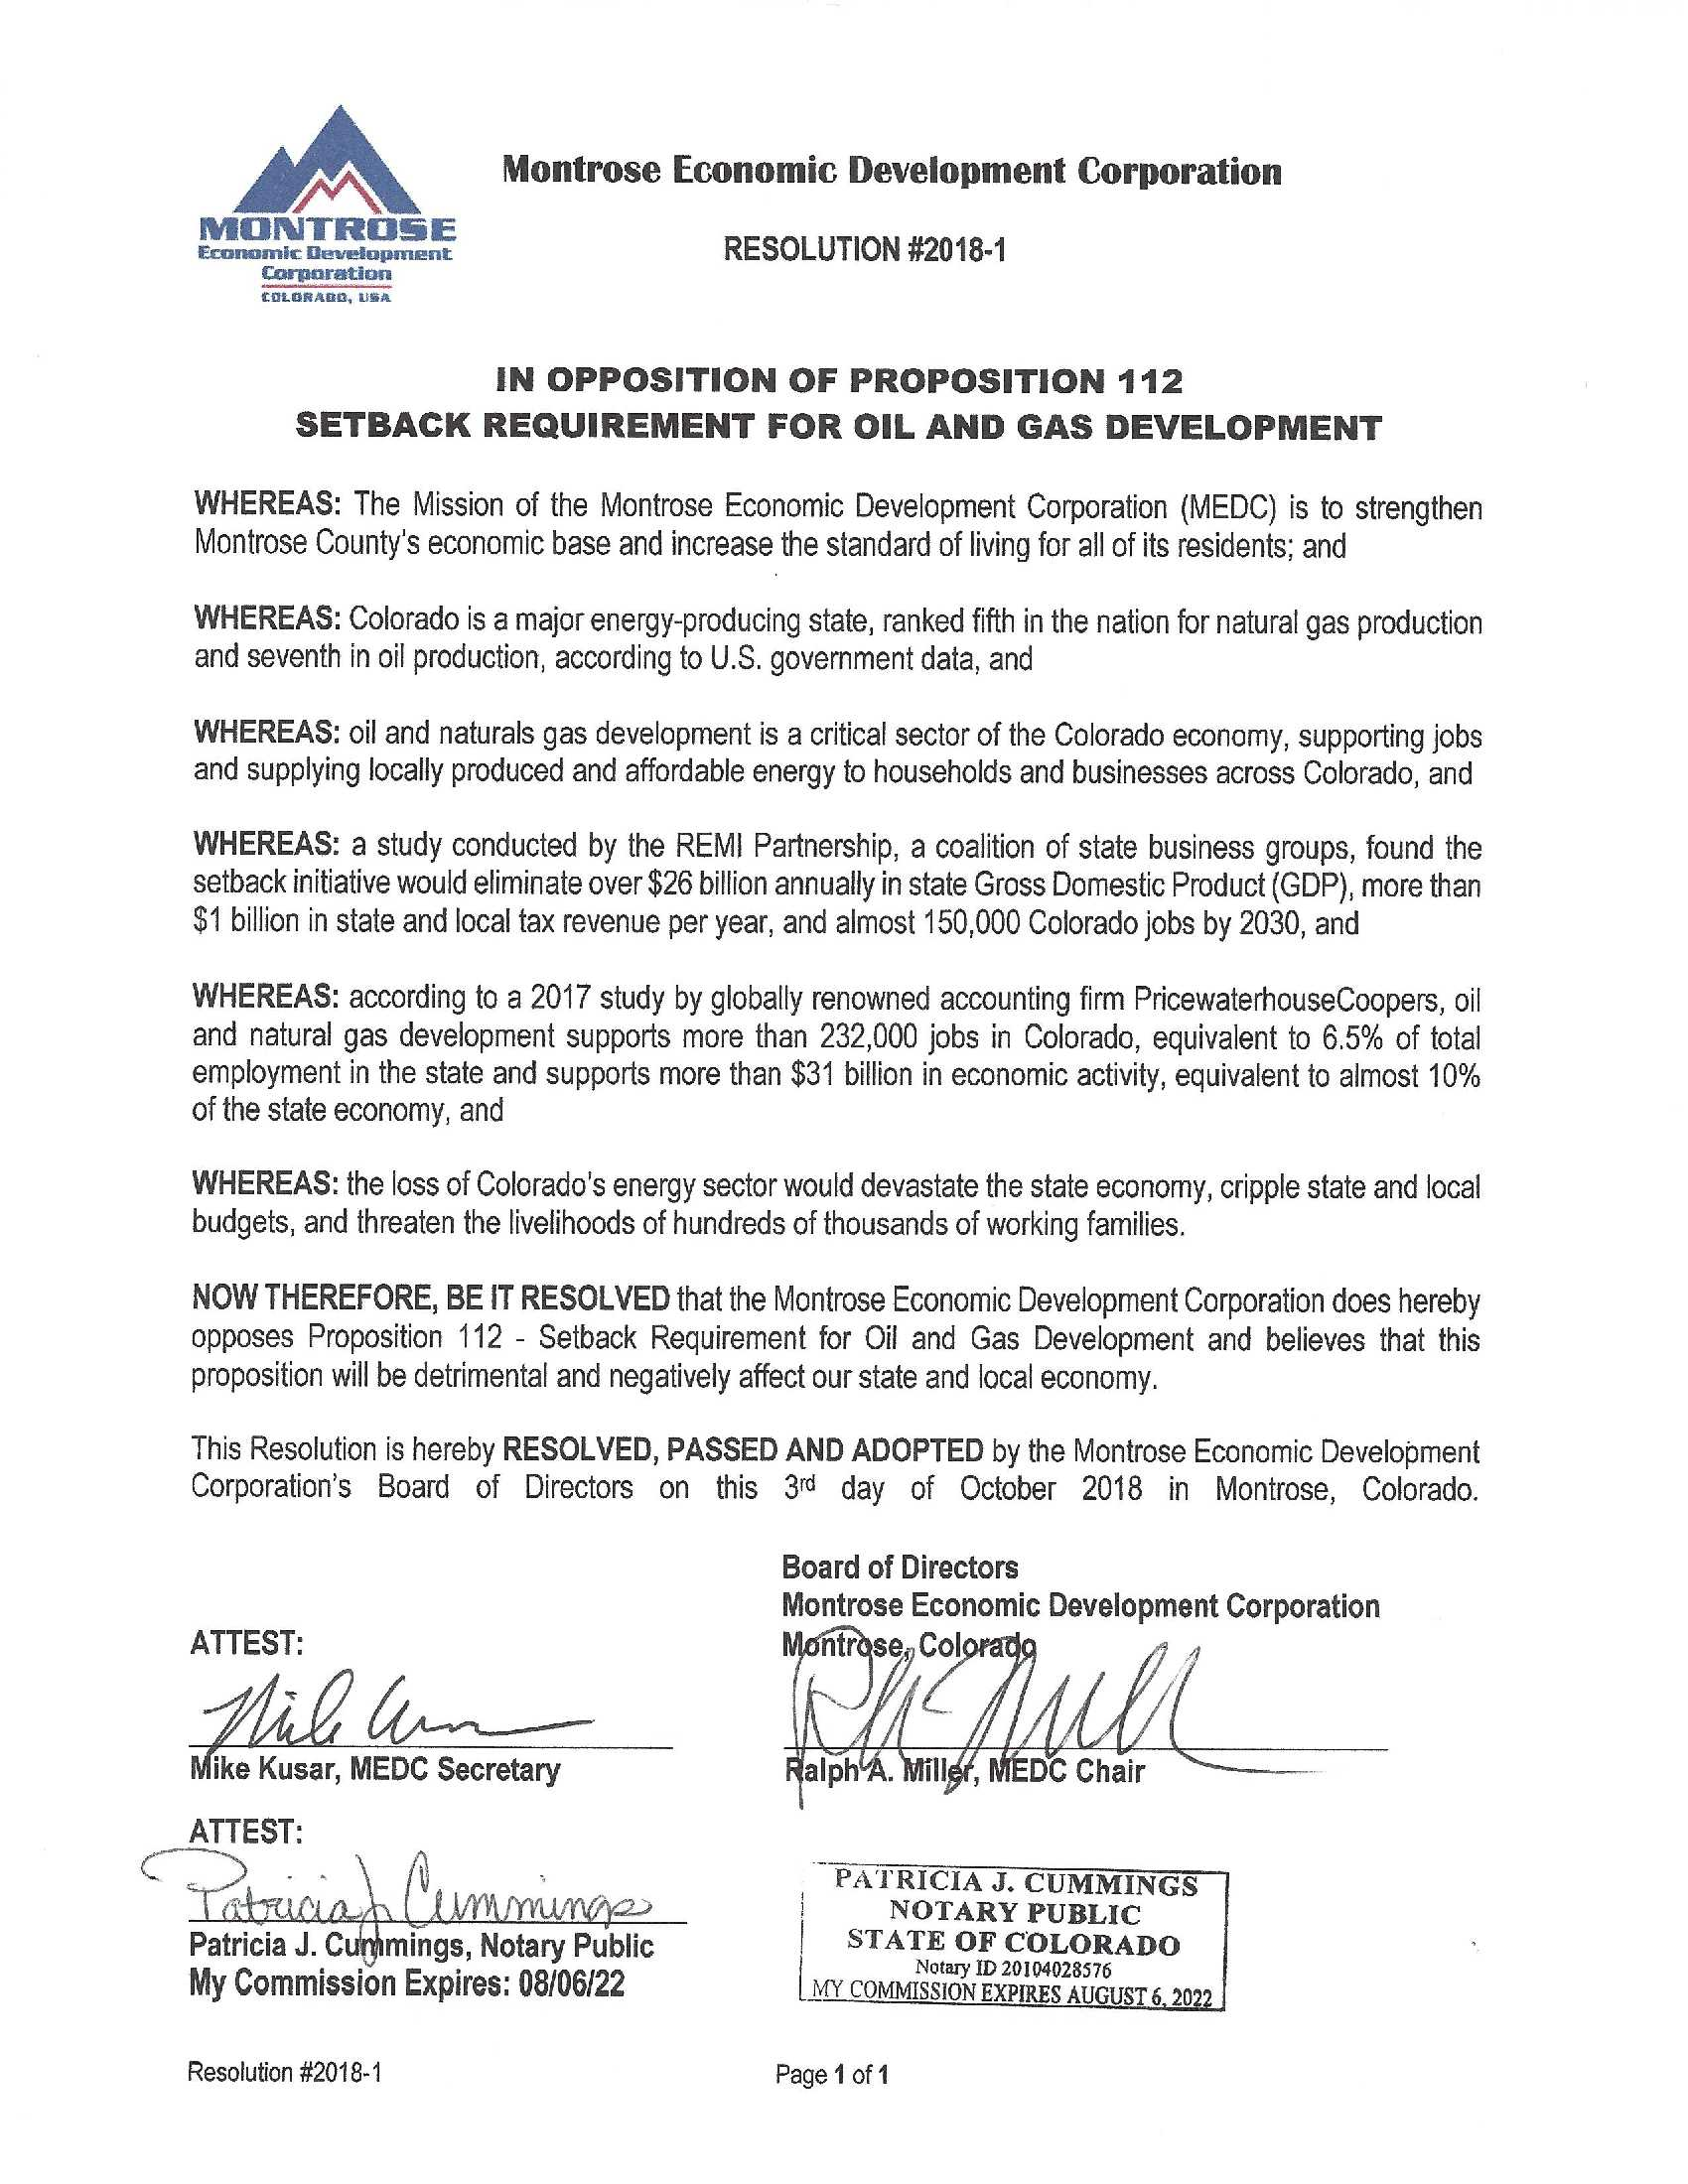 Resolution 2018-1, In Opposition to Proposition 112 - Final